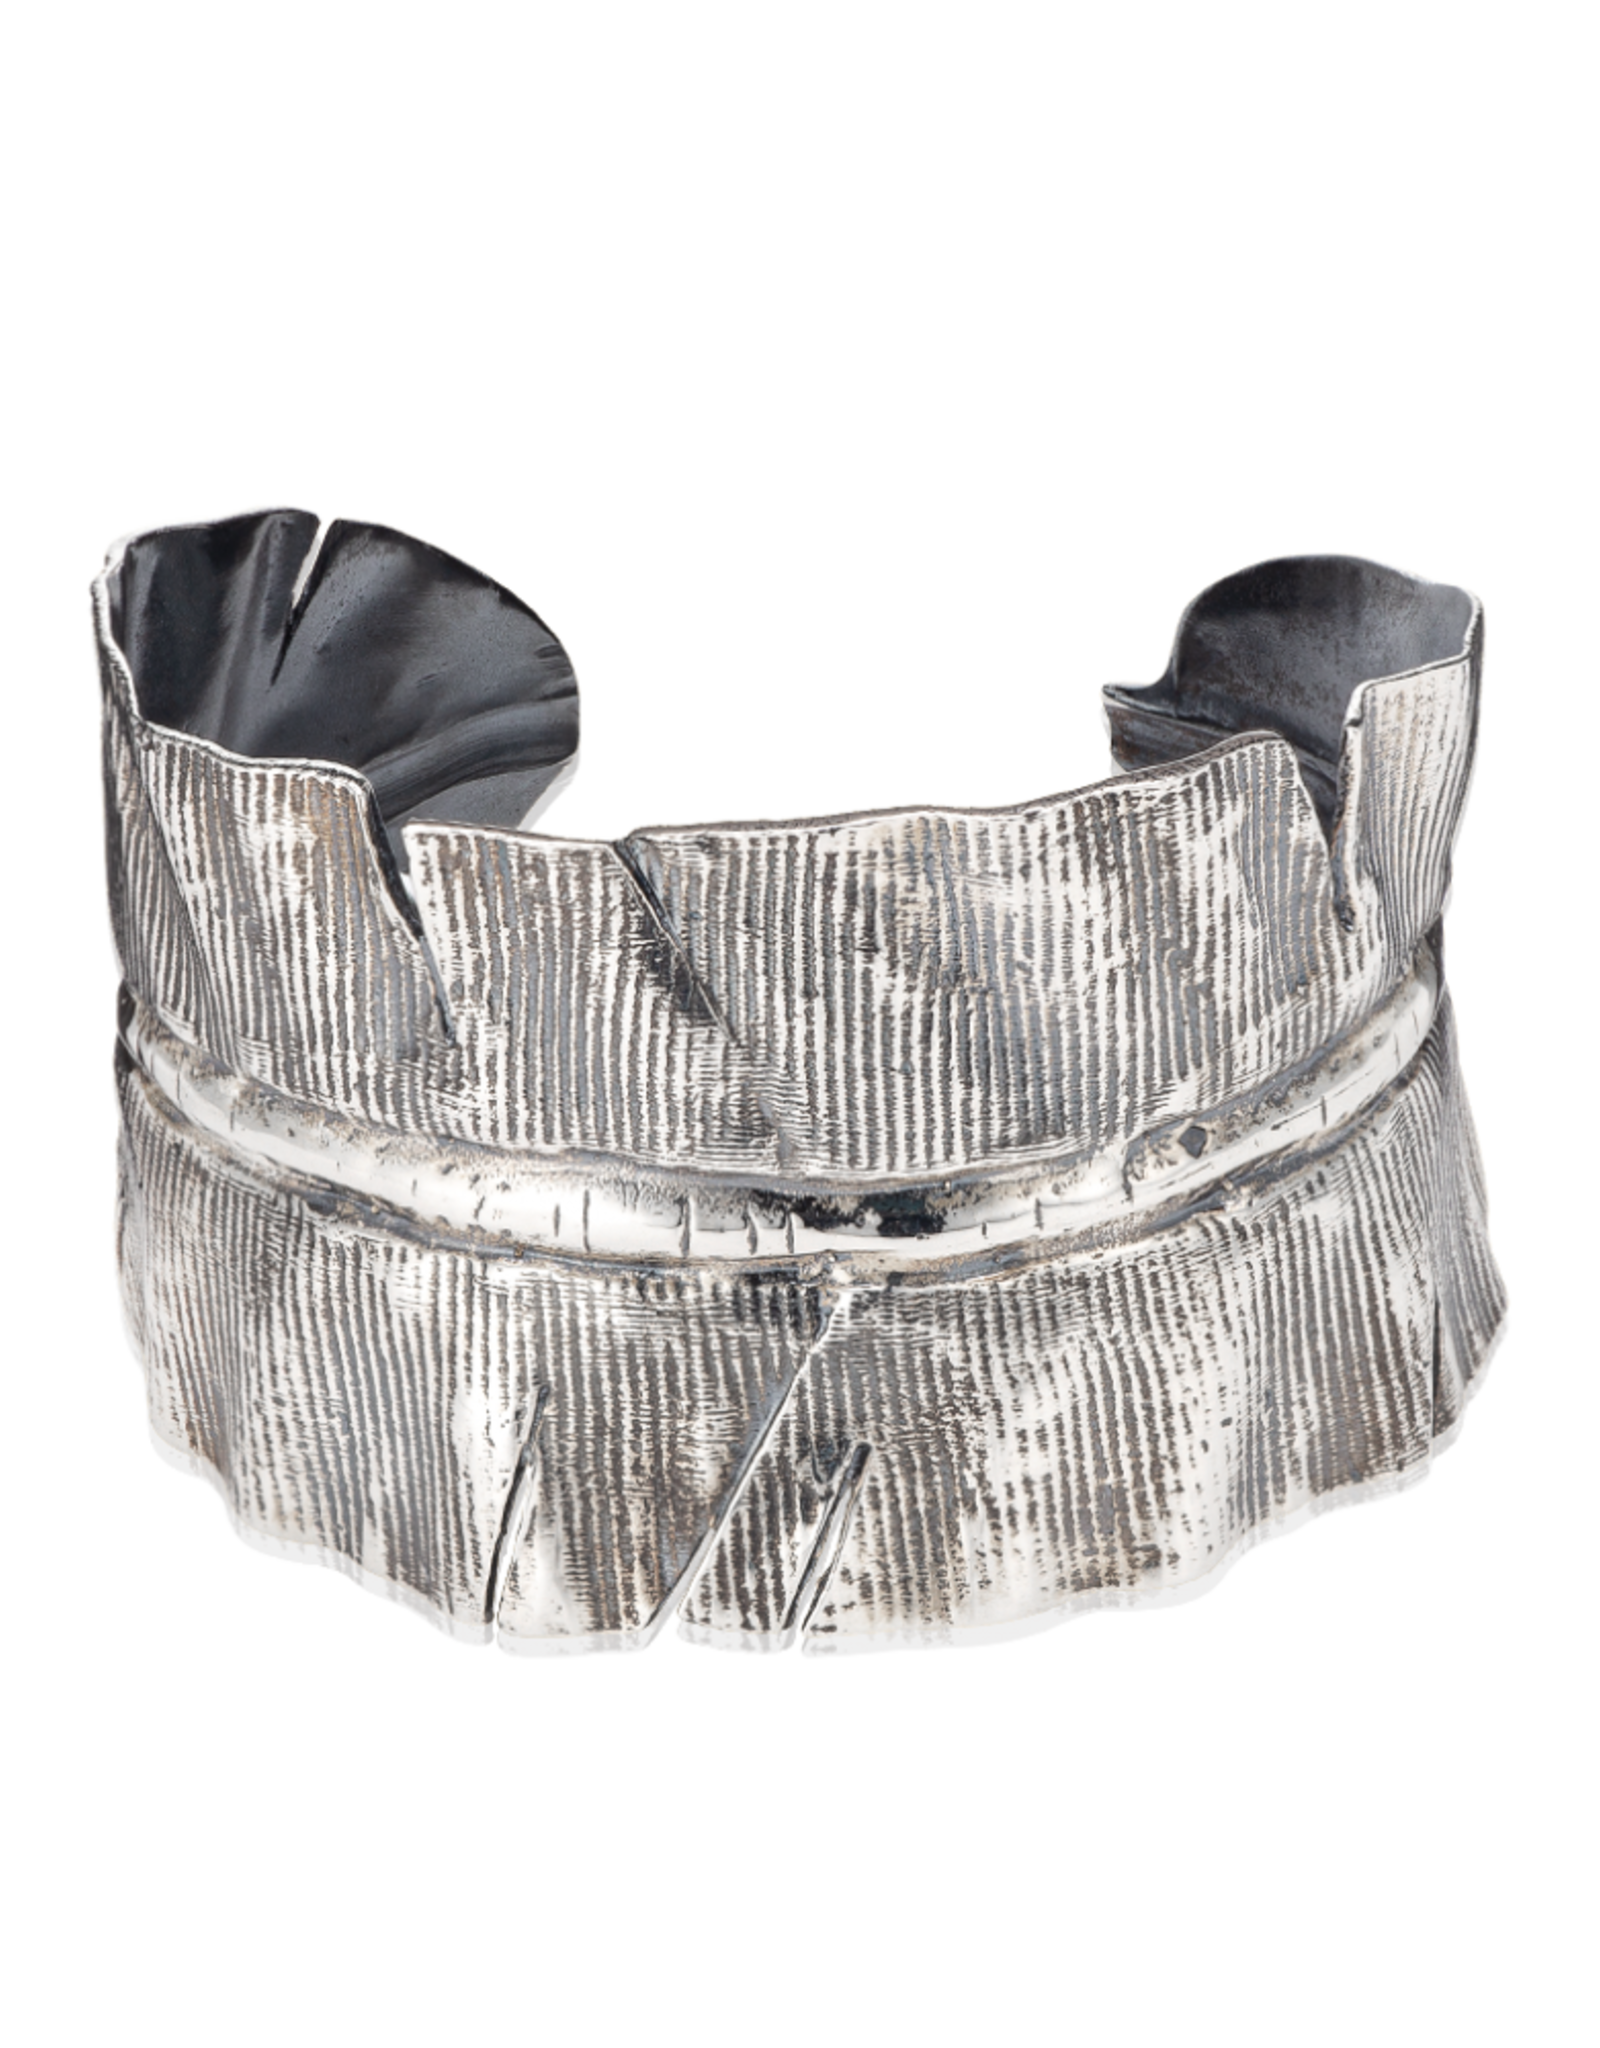 Mignon Faget Mignon Faget Banana Leaf Cuff Sterling